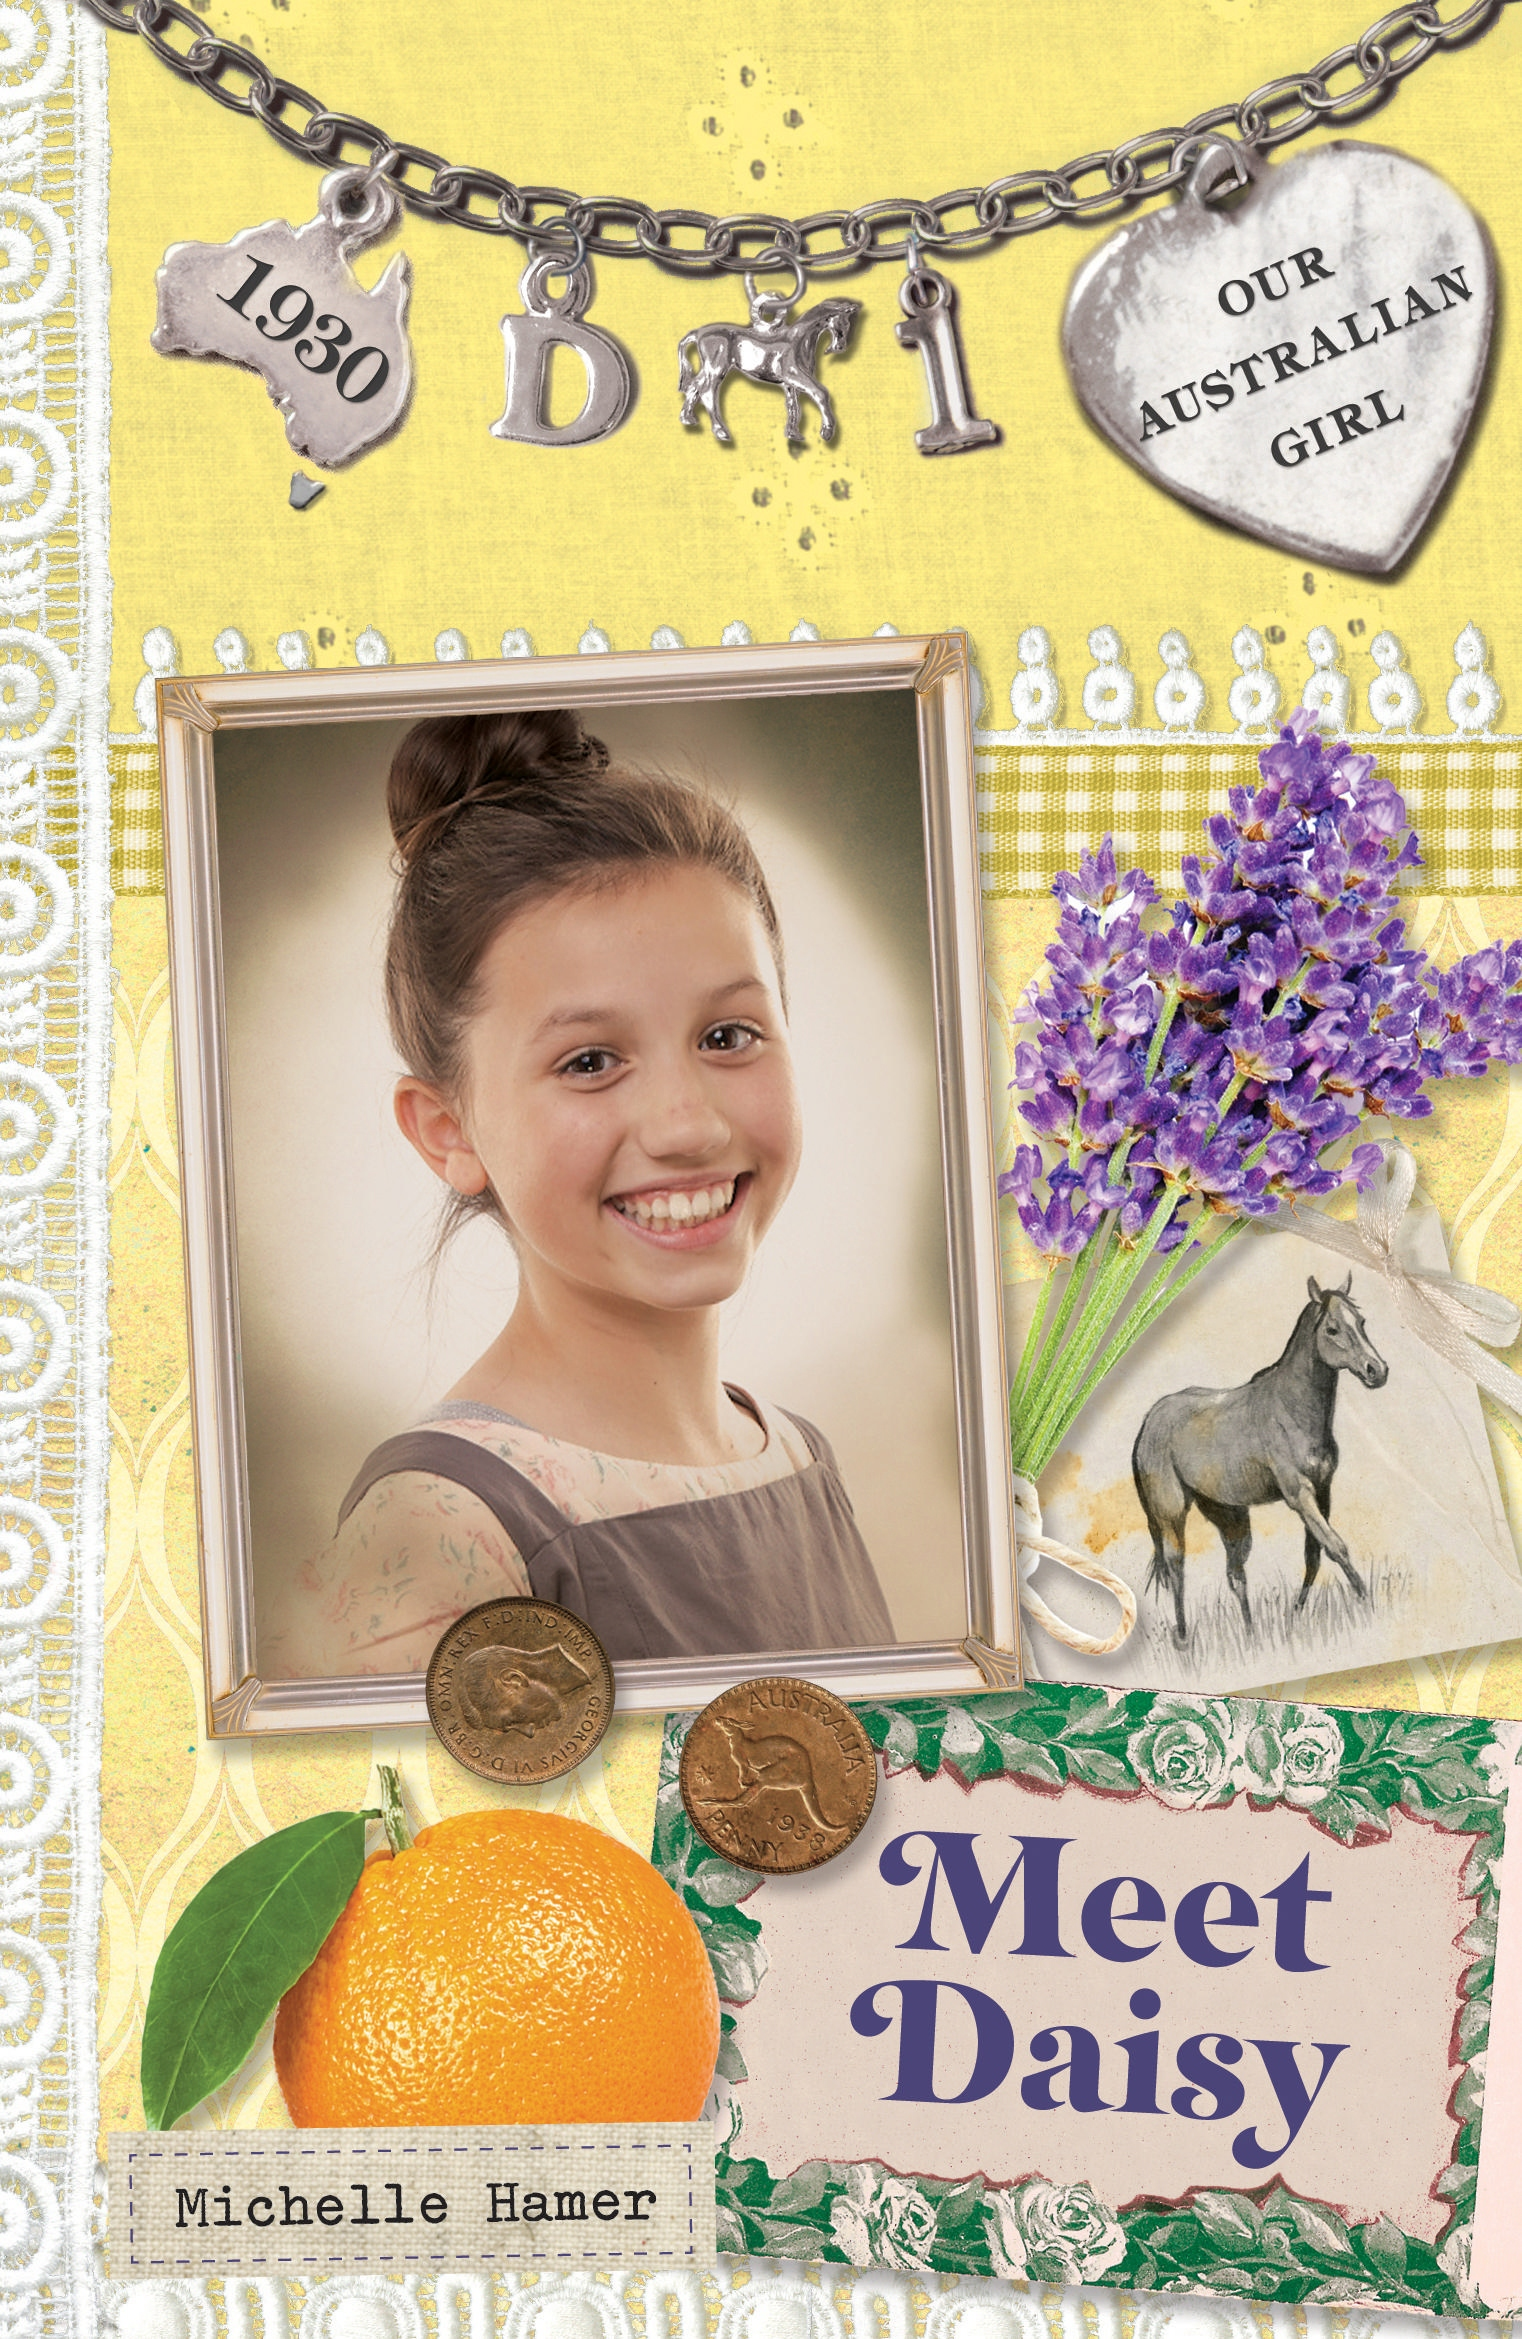 Our Australian Girl: Meet Daisy (Book 1)